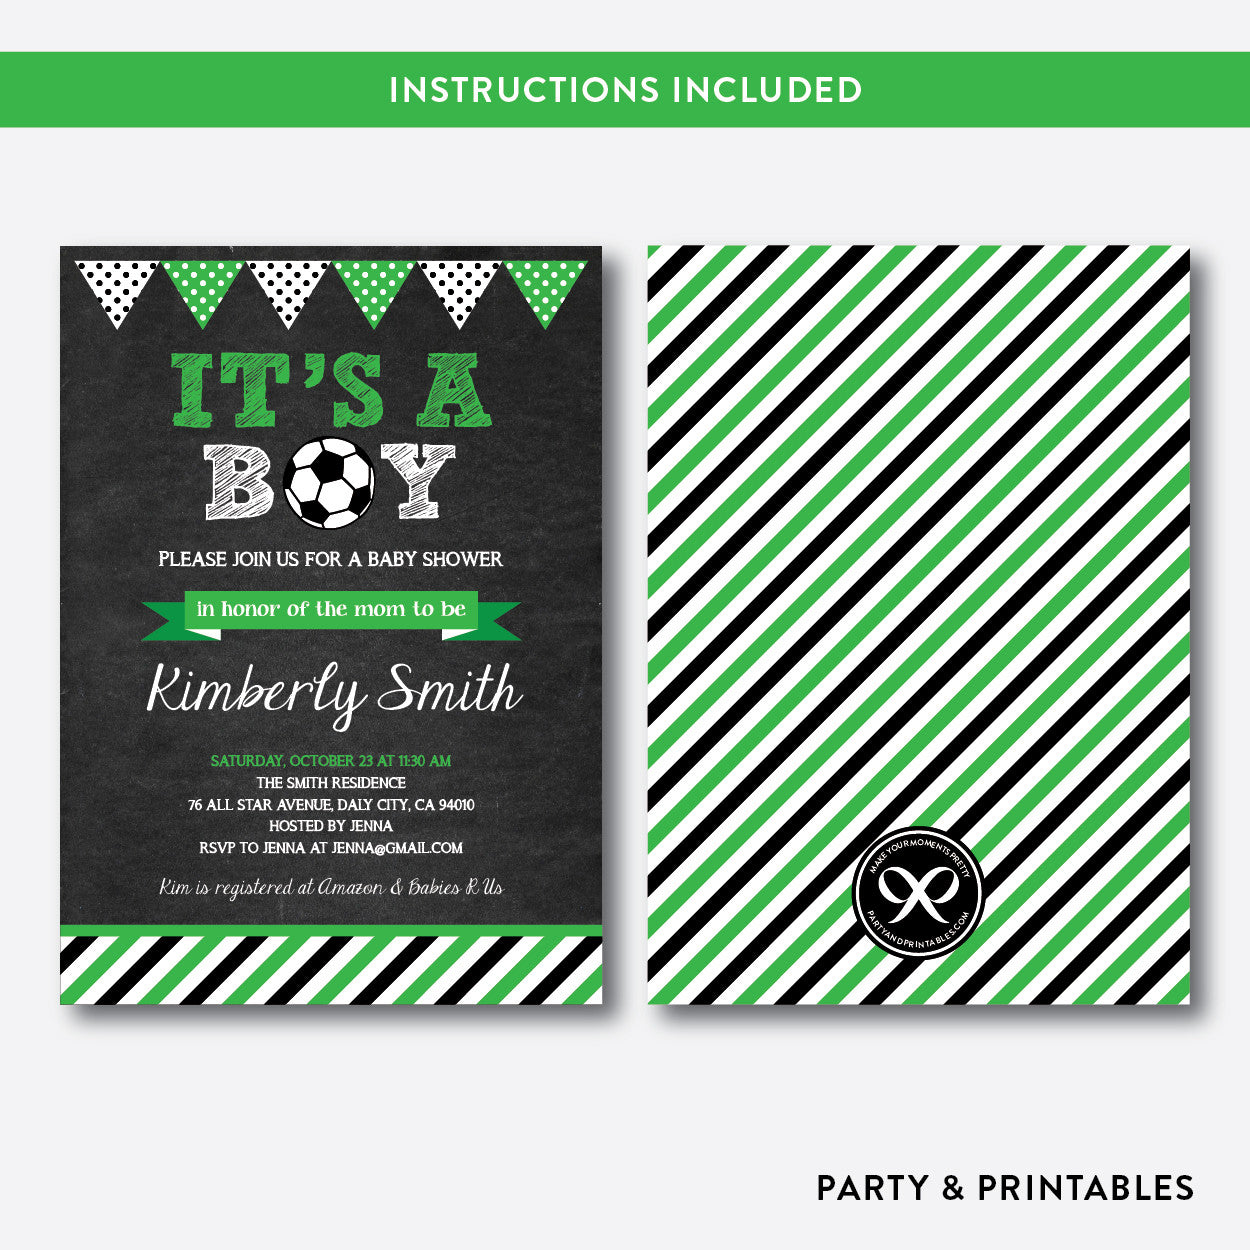 Soccer Chalkboard Baby Shower Invitation / Editable / Instant Download (CBS.08), invitation - Party and Printables